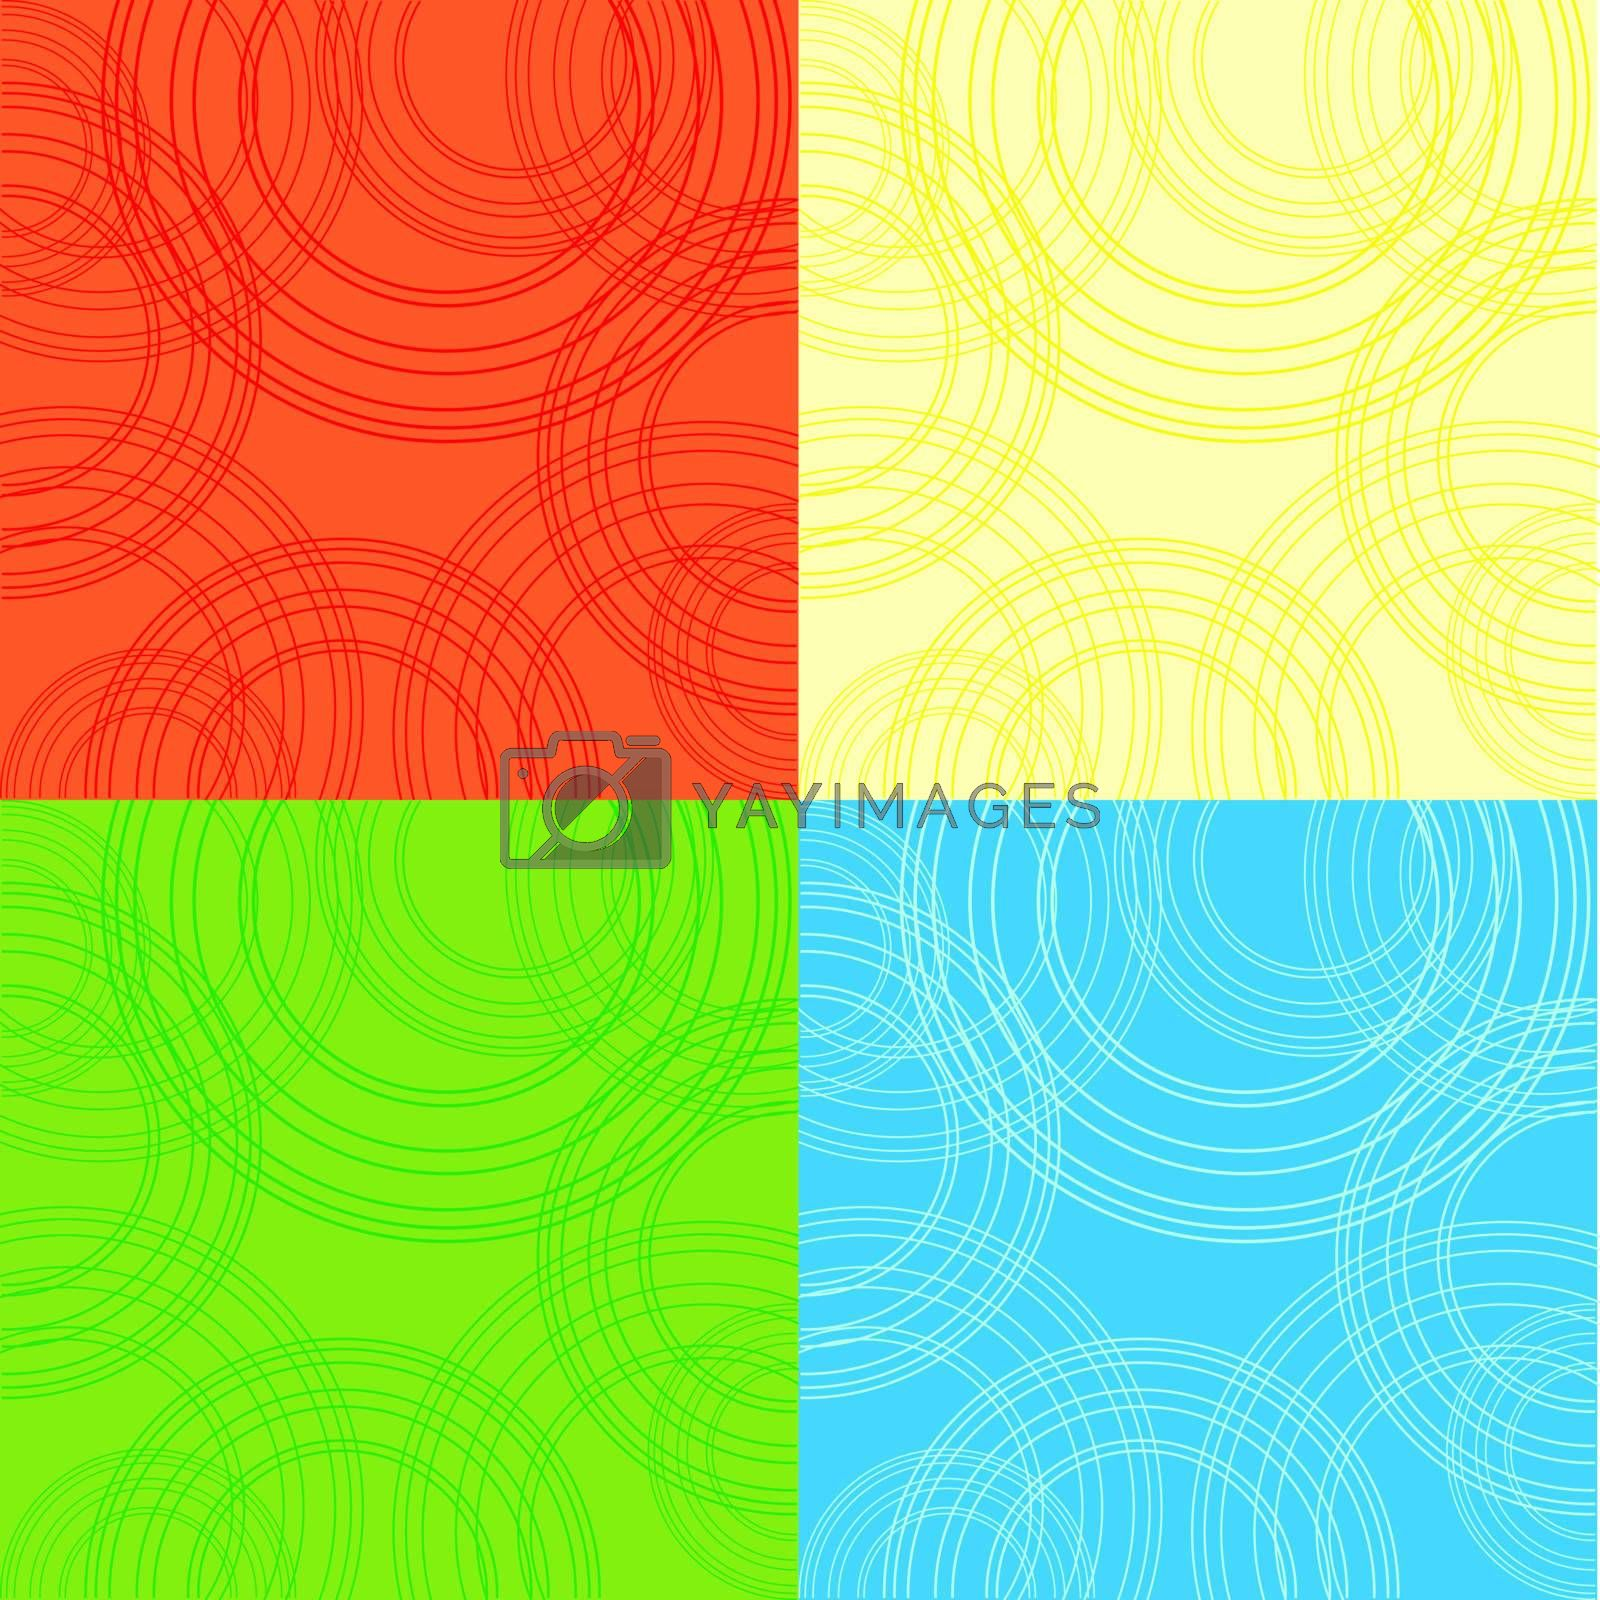 4  backgrounds with circles by catrinel